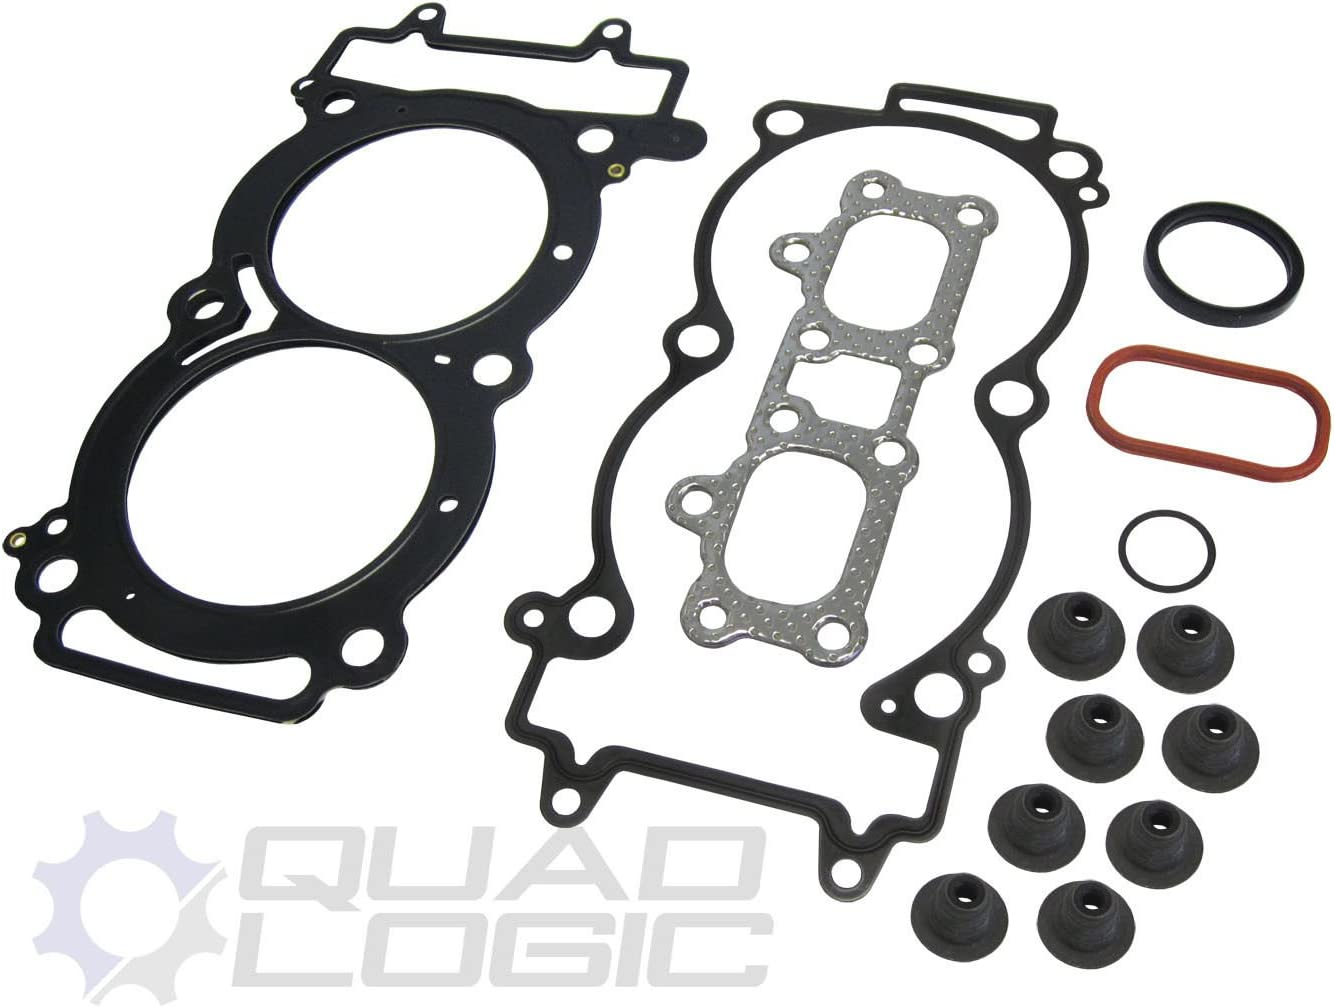 NEW Timing Chain Polaris RZR 1000 900 570 ACE General Ranger Cam Chain